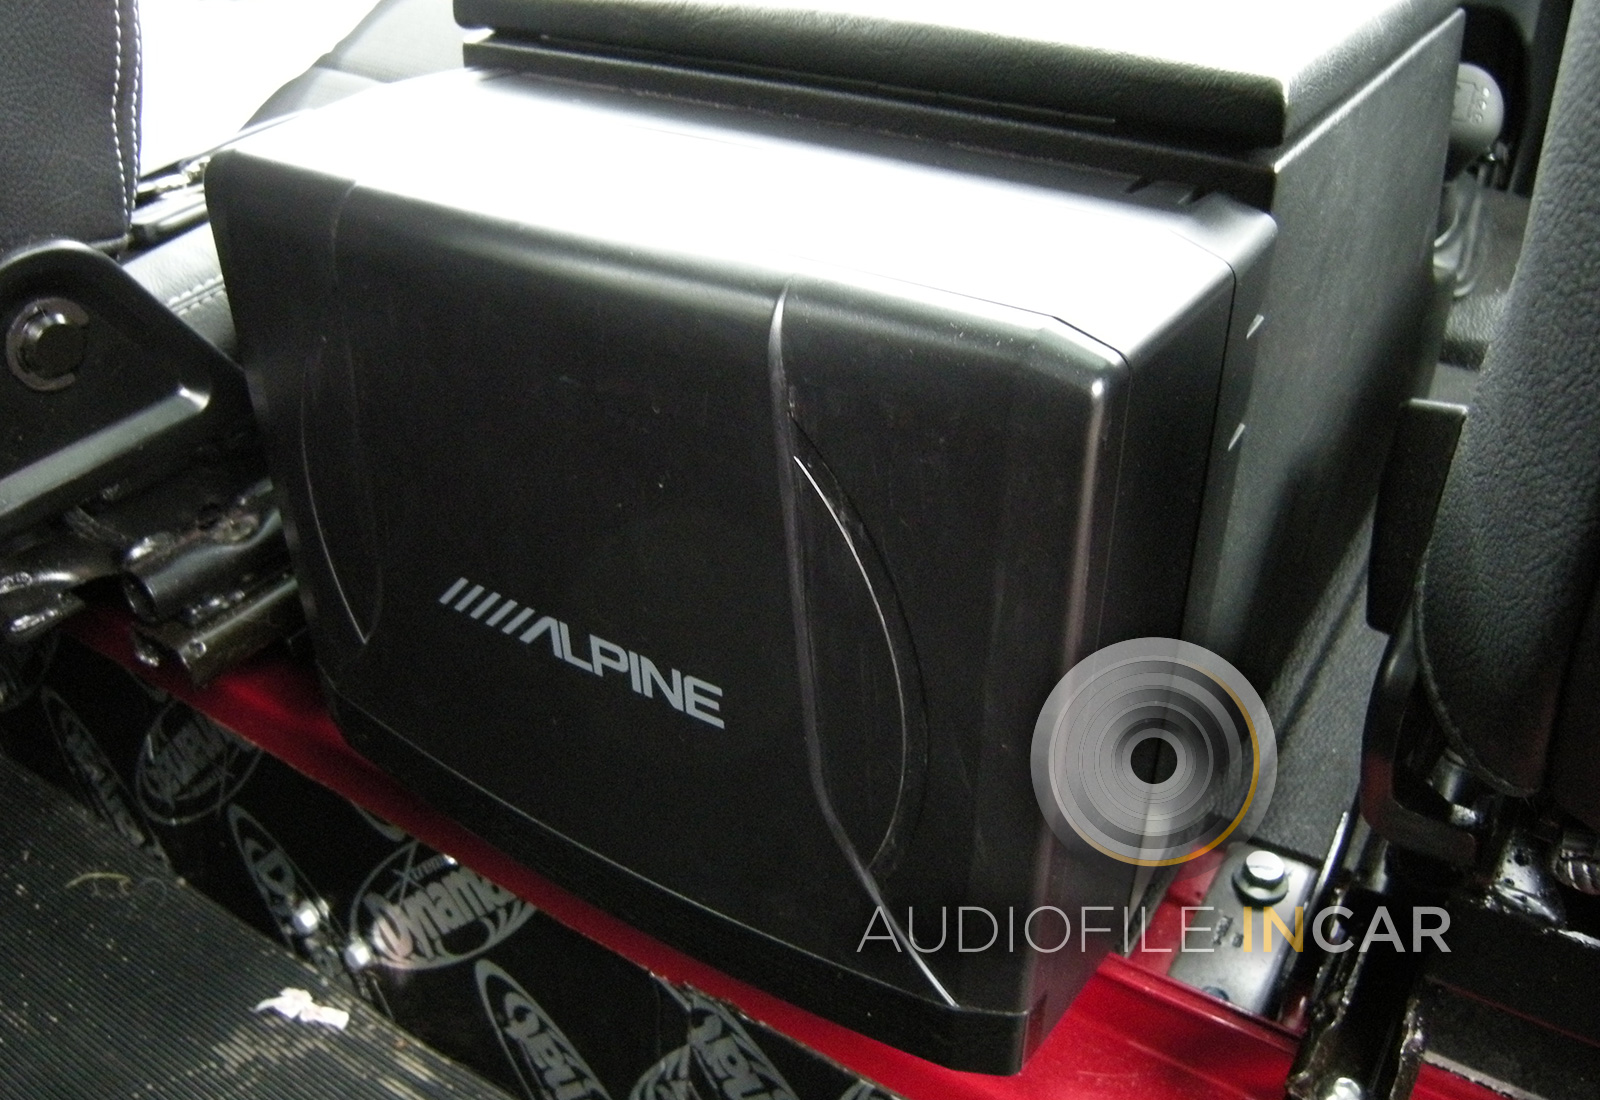 Alpine SWE 1200 Defender Audiofile-Incar